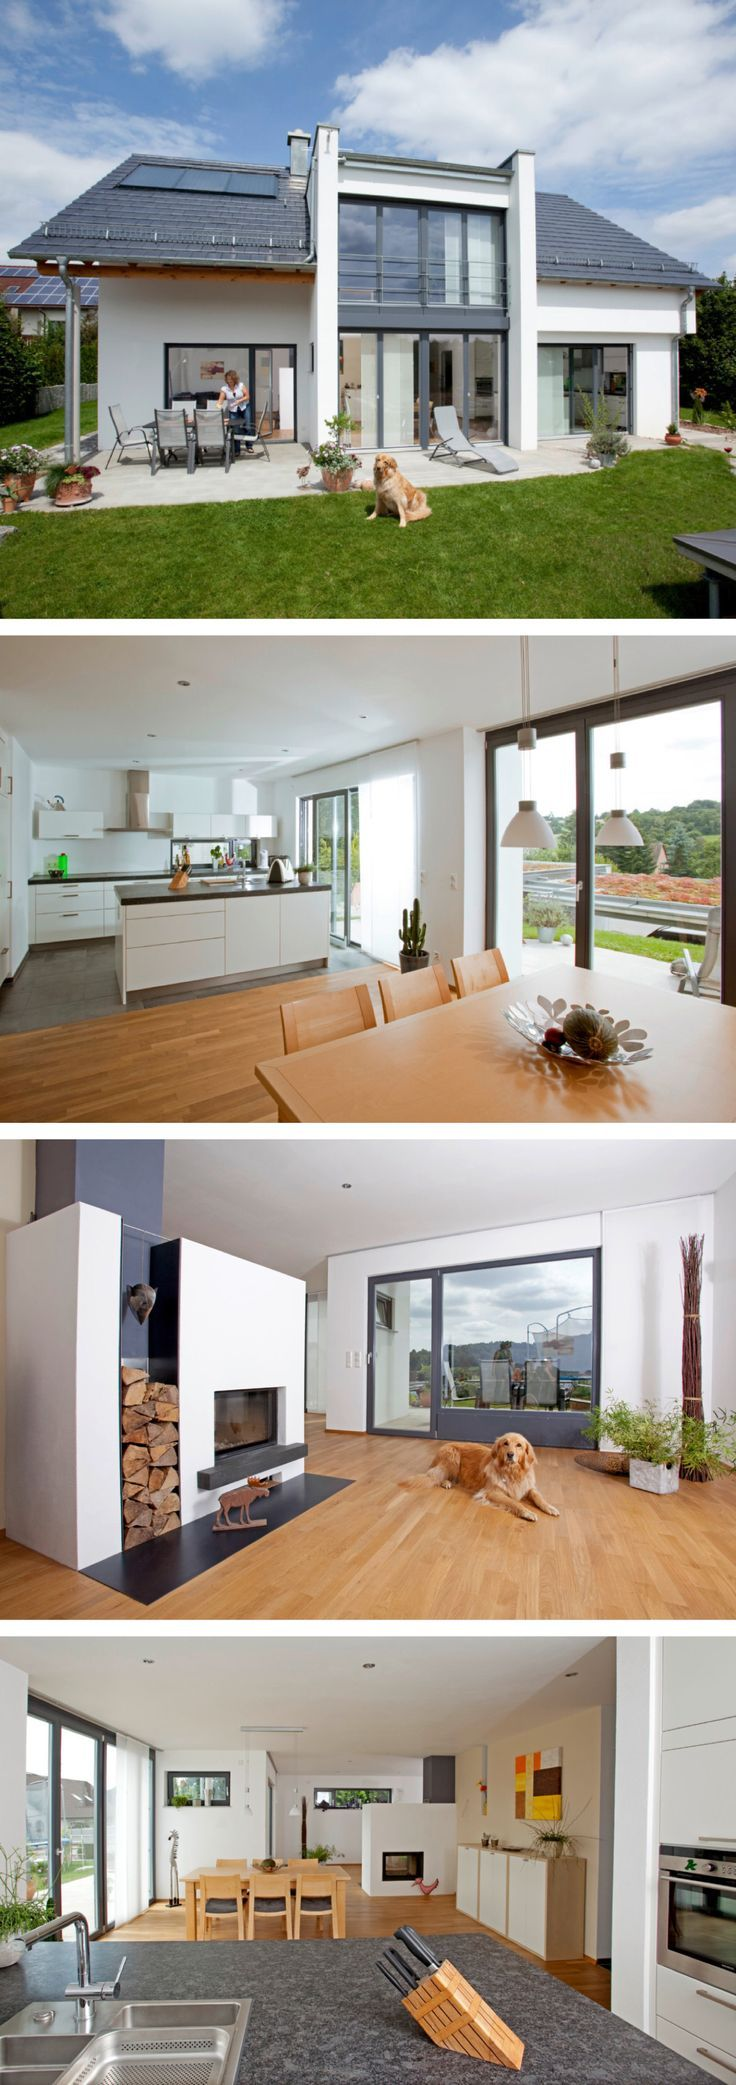 Saddle roof house modern with transept gallery  fireplace single family baumeiste also rh pinterest